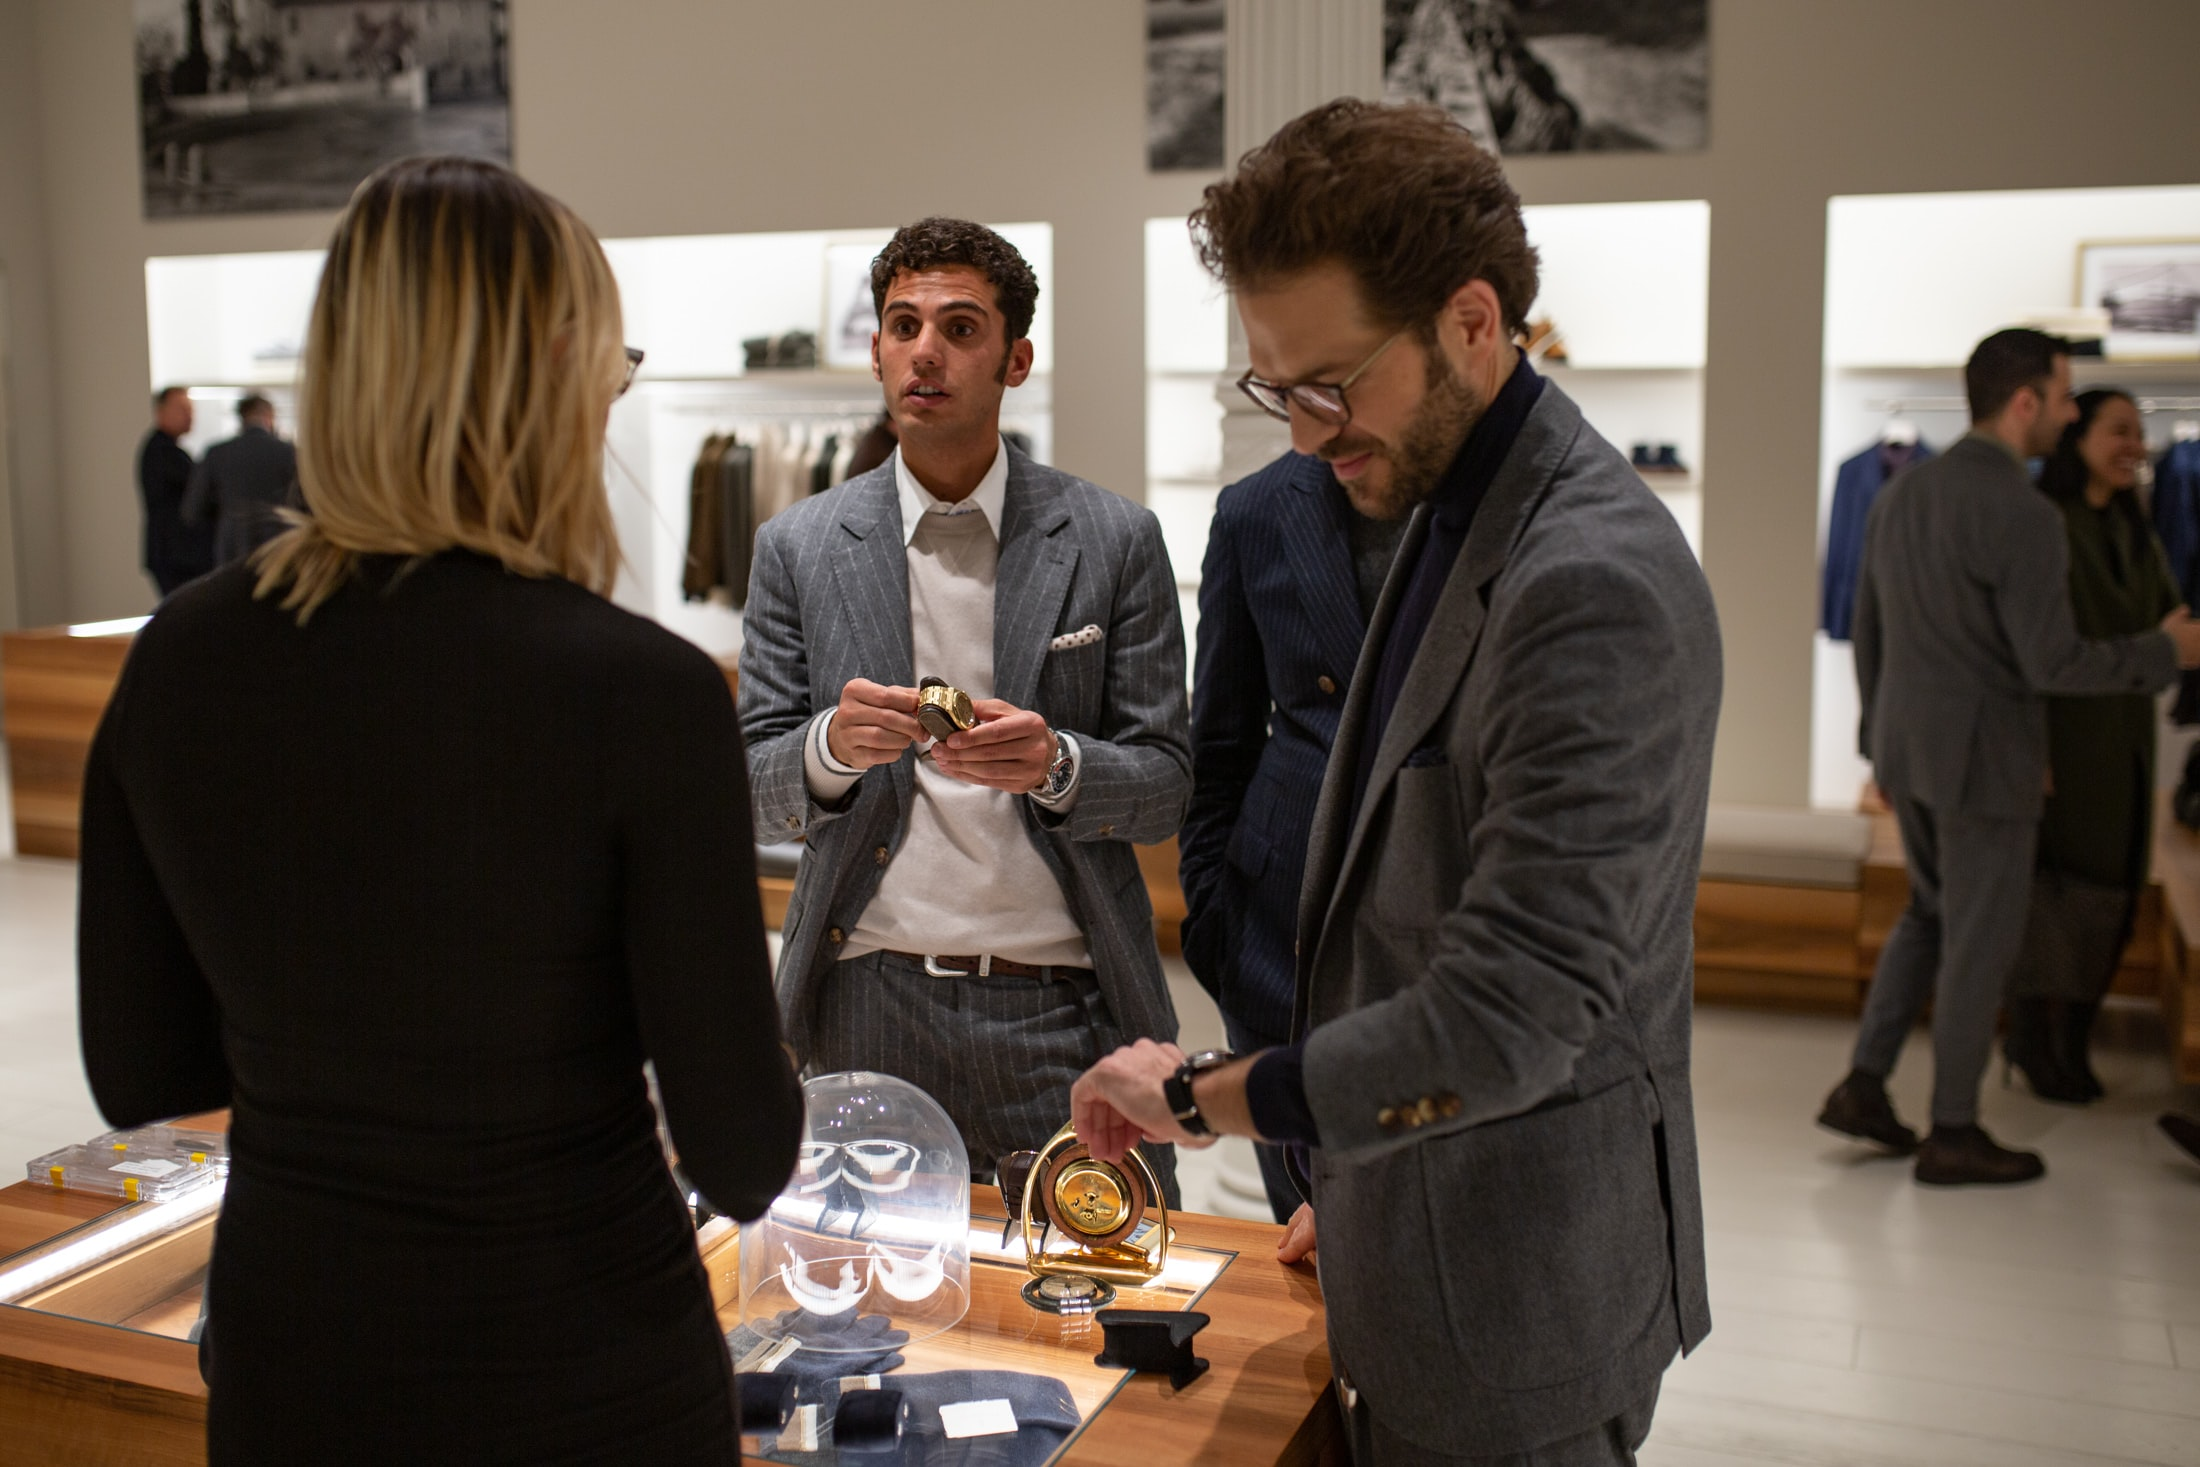 Photo Report: An Evening With Brunello Cucinelli In New York City 20010684